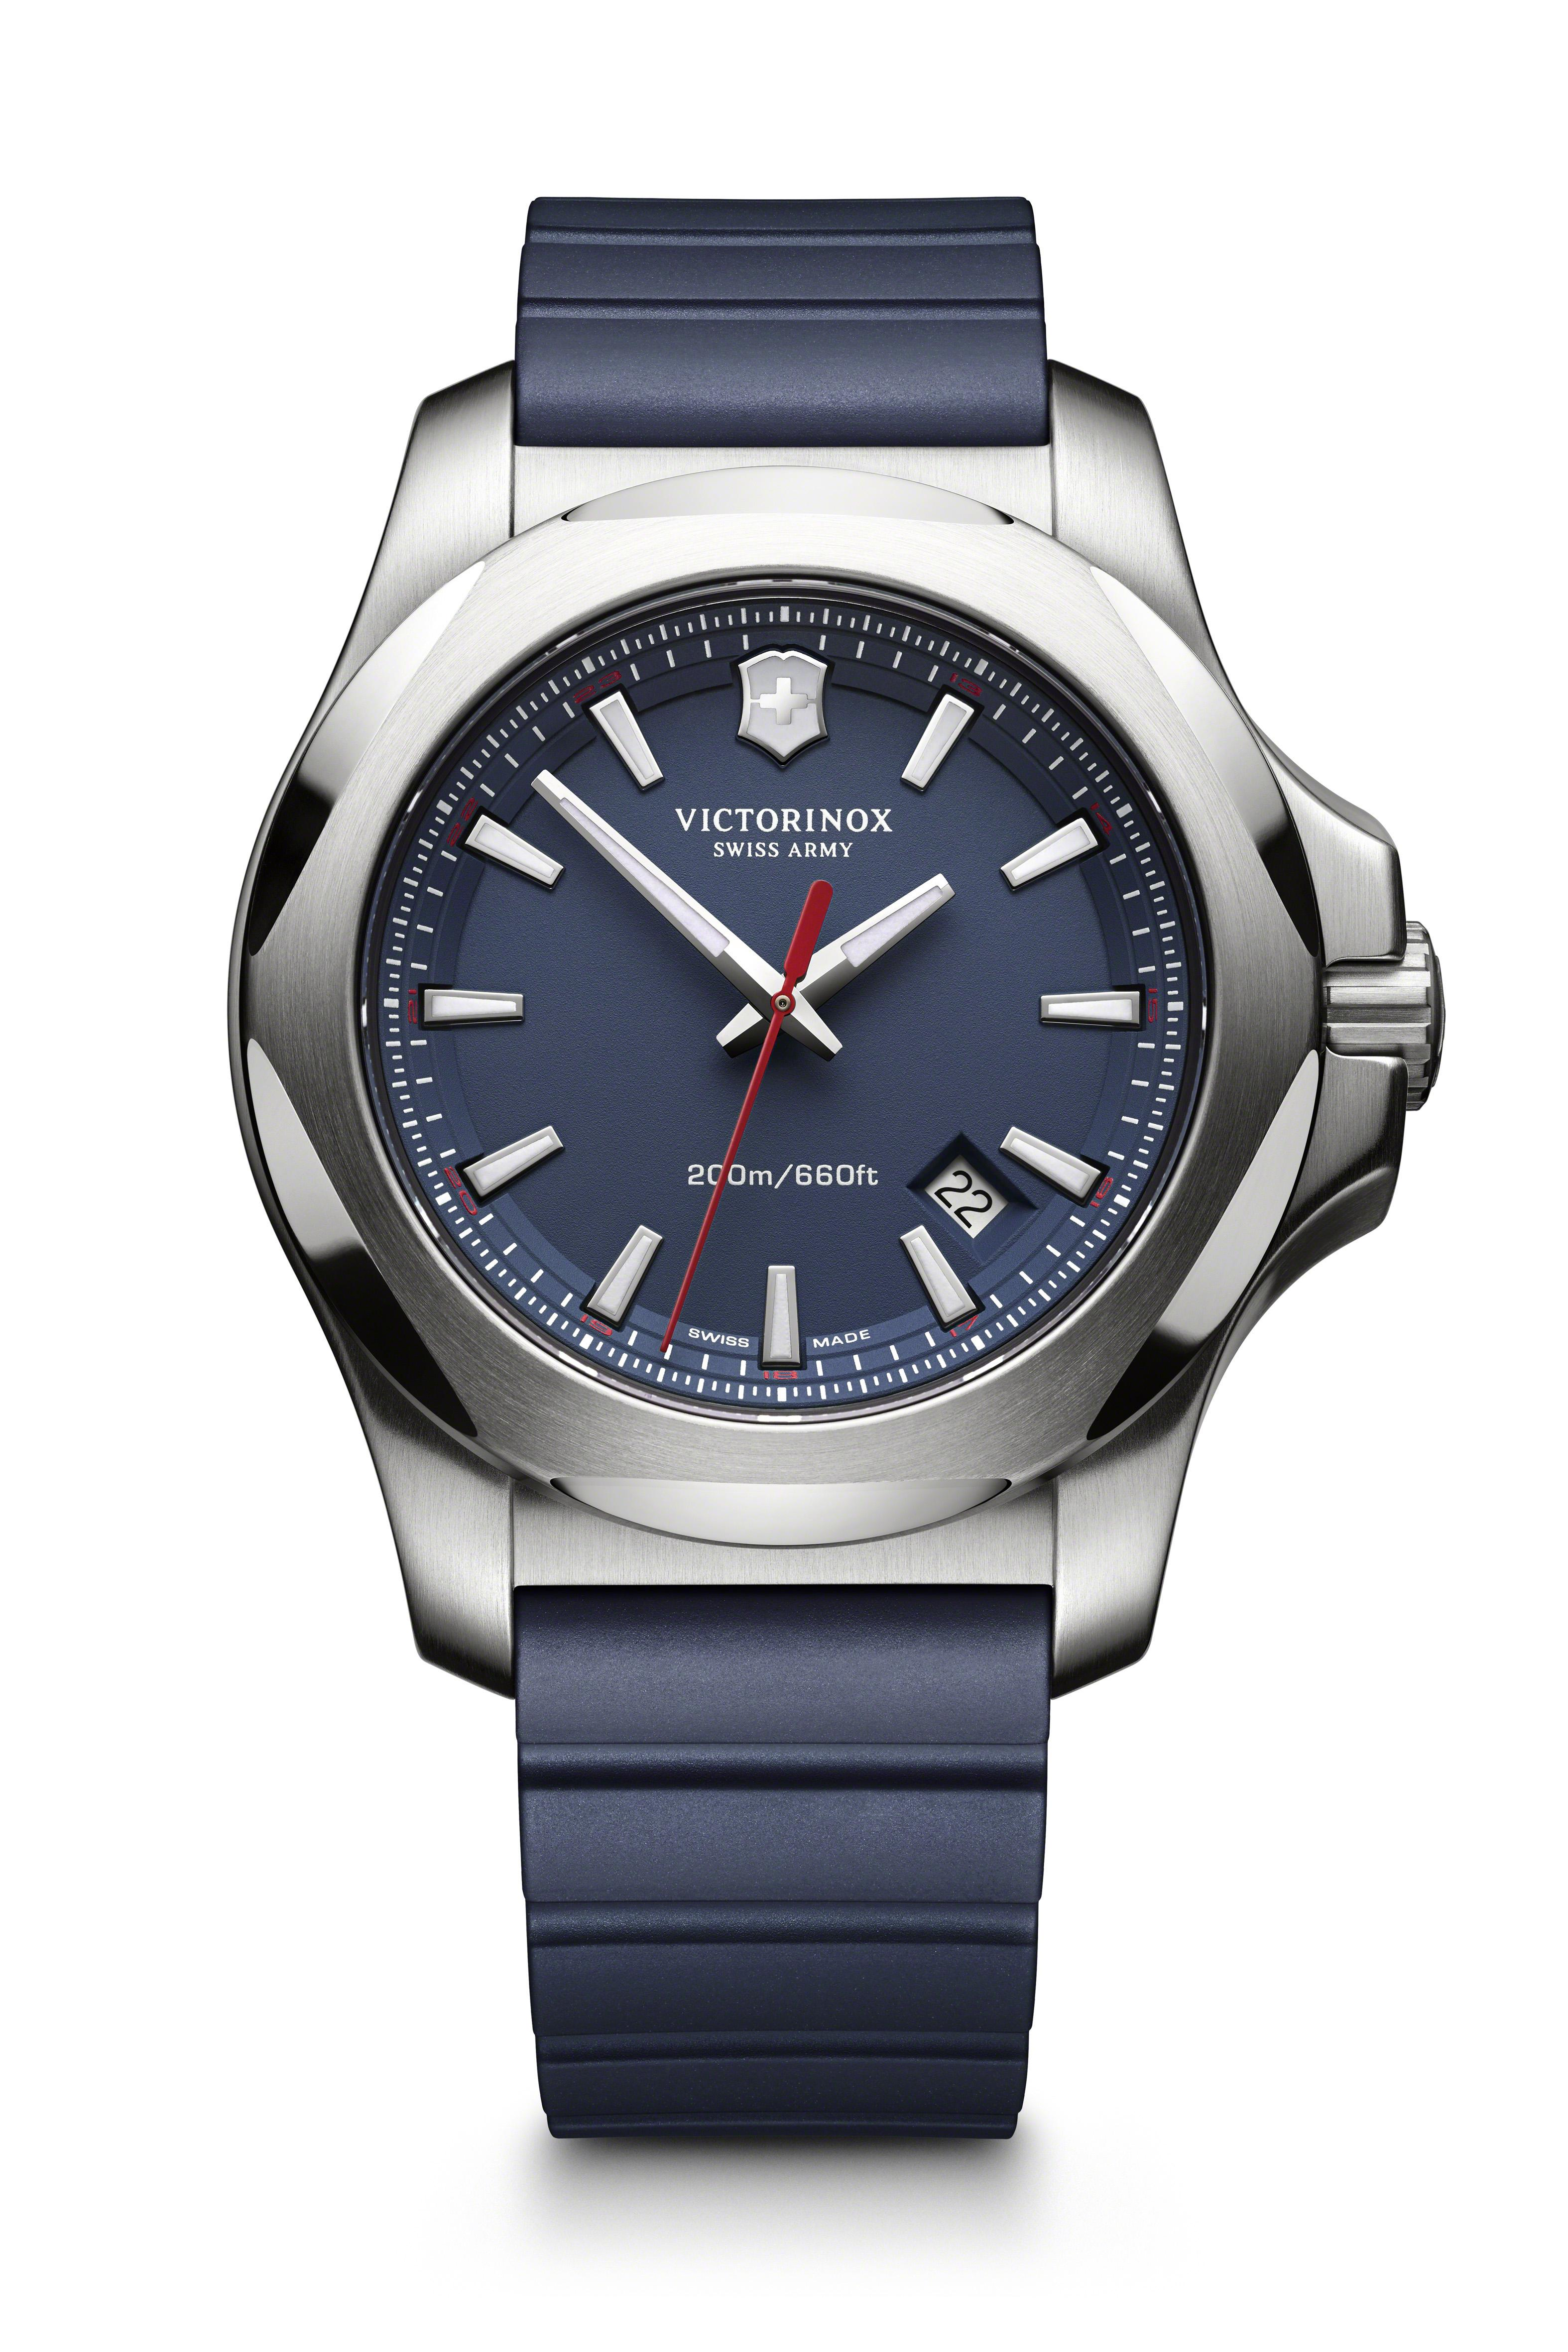 Victorinox-inox-watch-blue